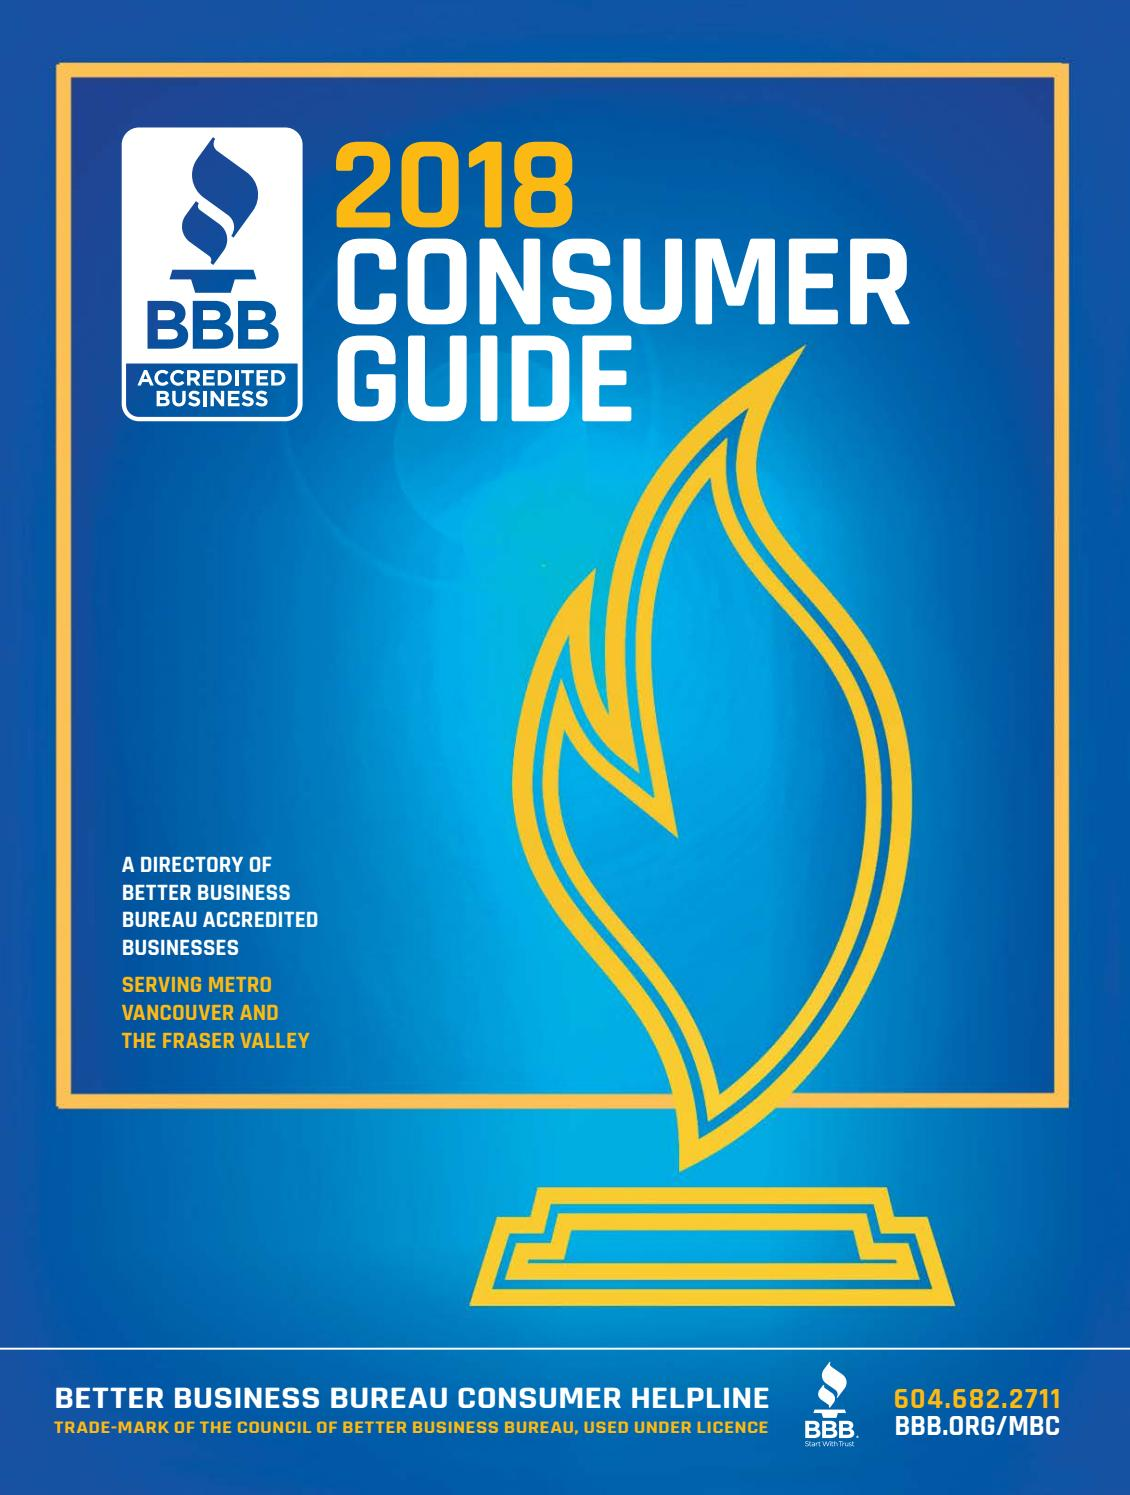 Better Business Bureau Consumer Guide 2018 By Business In